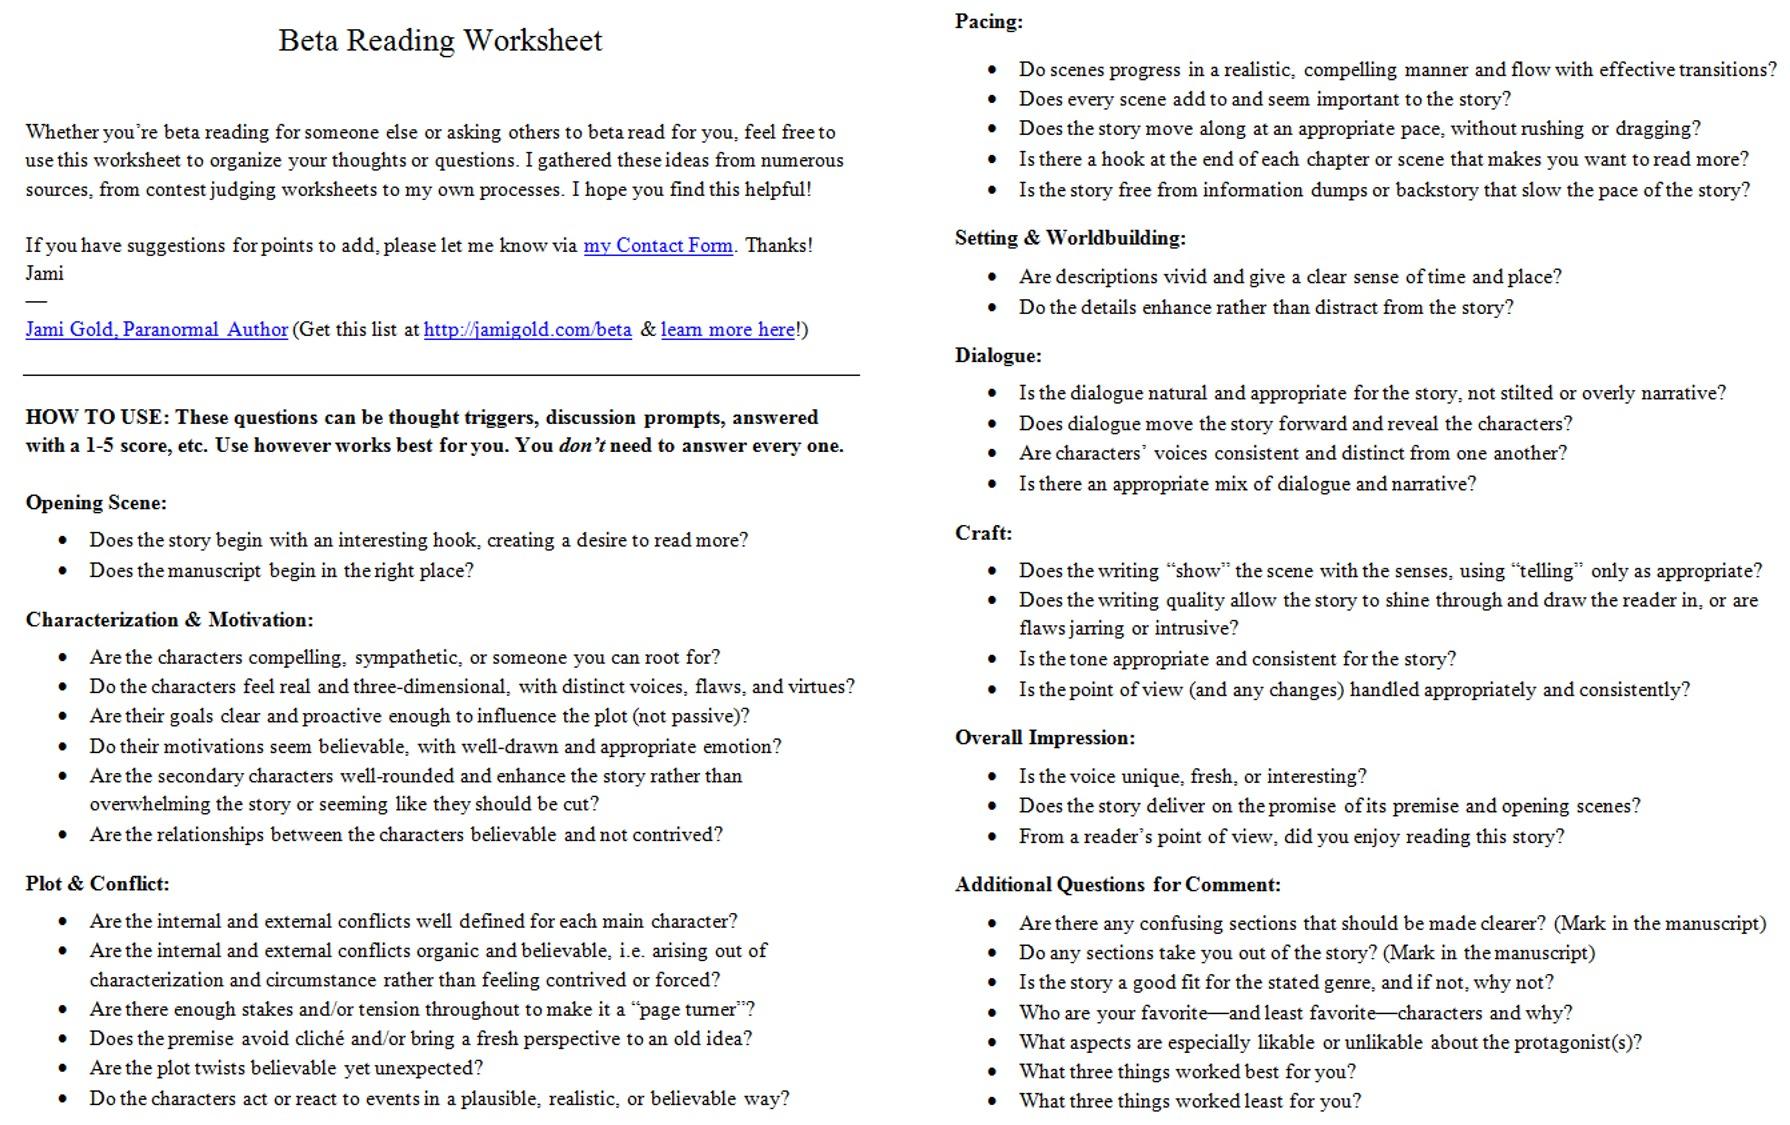 Aldiablosus  Terrific Worksheets For Writers  Jami Gold Paranormal Author With Hot Screen Shot Of The Twopage Beta Reading Worksheet With Captivating Kindergarten Reading Worksheets Sight Words Also La Worksheets In Addition Worksheets On Integers And Slope Formula Worksheets As Well As Protein Synthesis Activity Worksheet Additionally Place Value Free Worksheets From Jamigoldcom With Aldiablosus  Hot Worksheets For Writers  Jami Gold Paranormal Author With Captivating Screen Shot Of The Twopage Beta Reading Worksheet And Terrific Kindergarten Reading Worksheets Sight Words Also La Worksheets In Addition Worksheets On Integers From Jamigoldcom